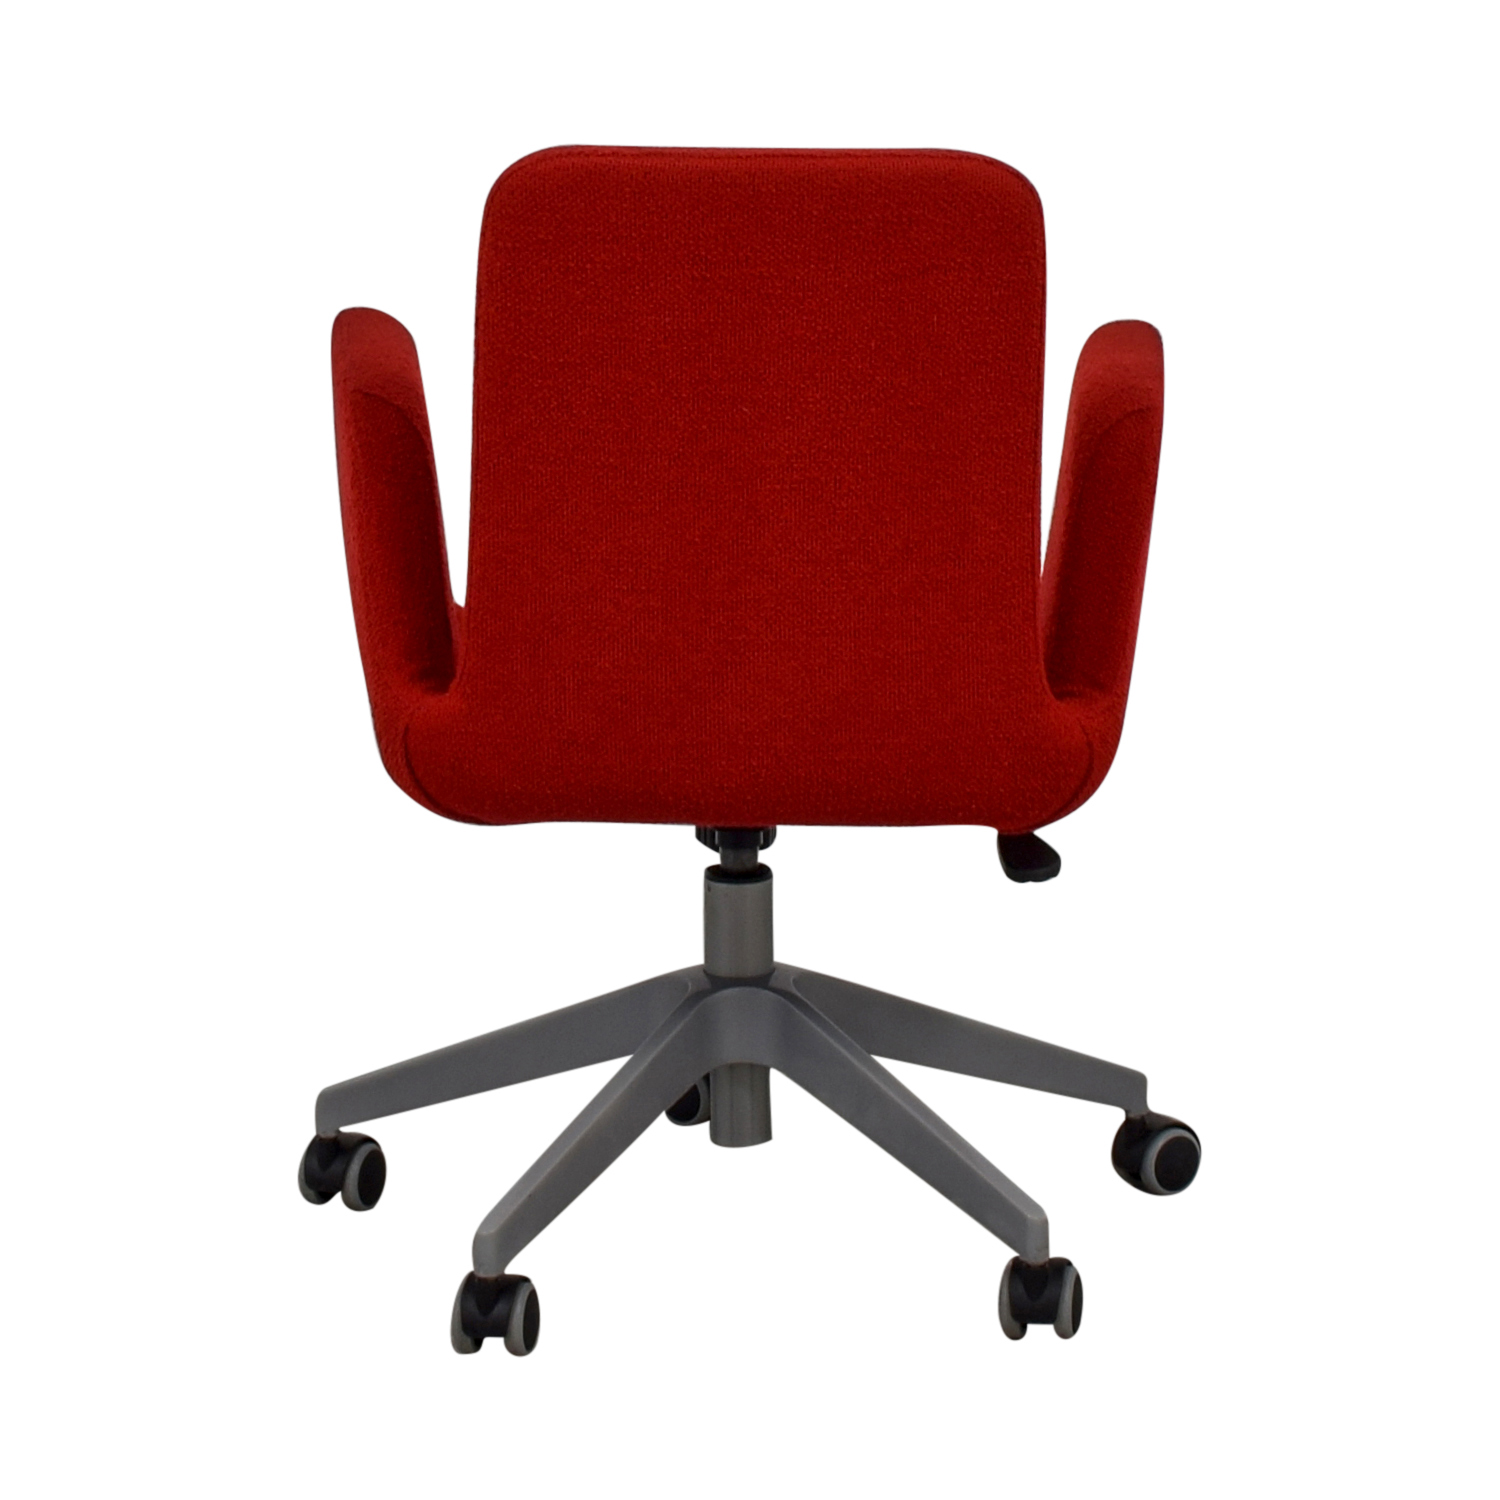 IKEA IKEA Patrik Red Rolling Desk Chair used